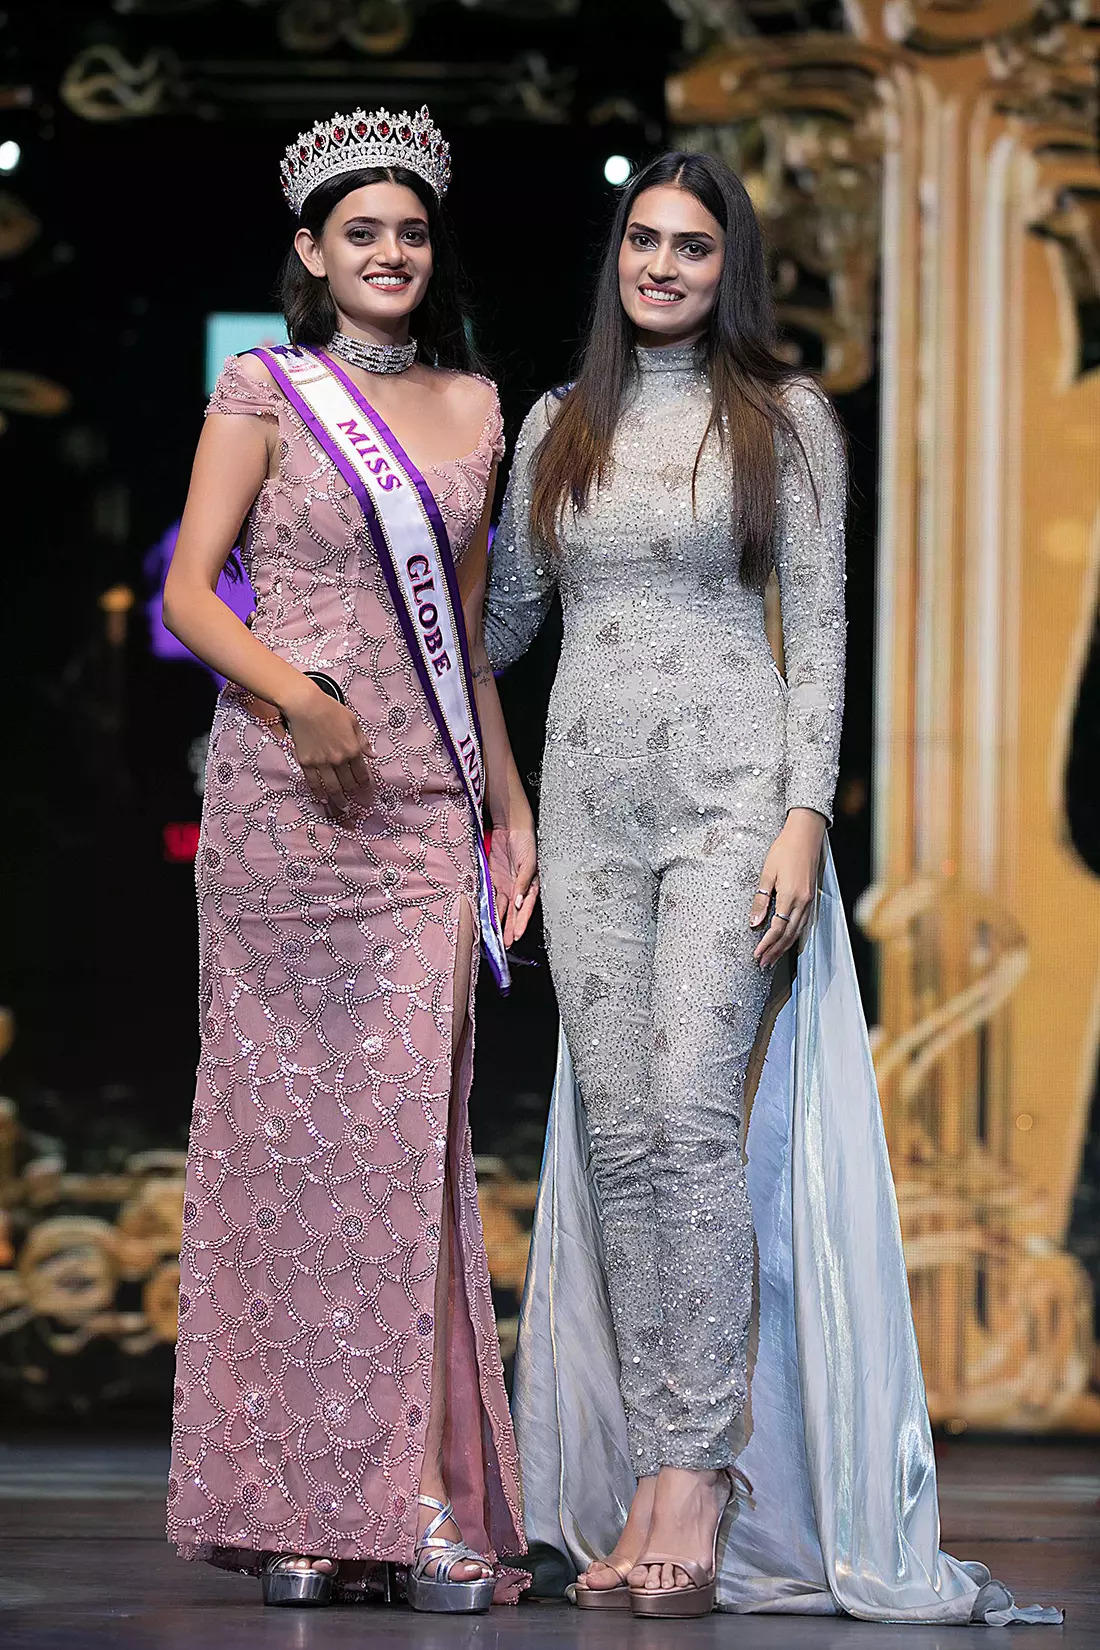 Pictures of Tanya Sinha who wins Glamanand Supermodel India 2021, will represent India at Miss Globe International